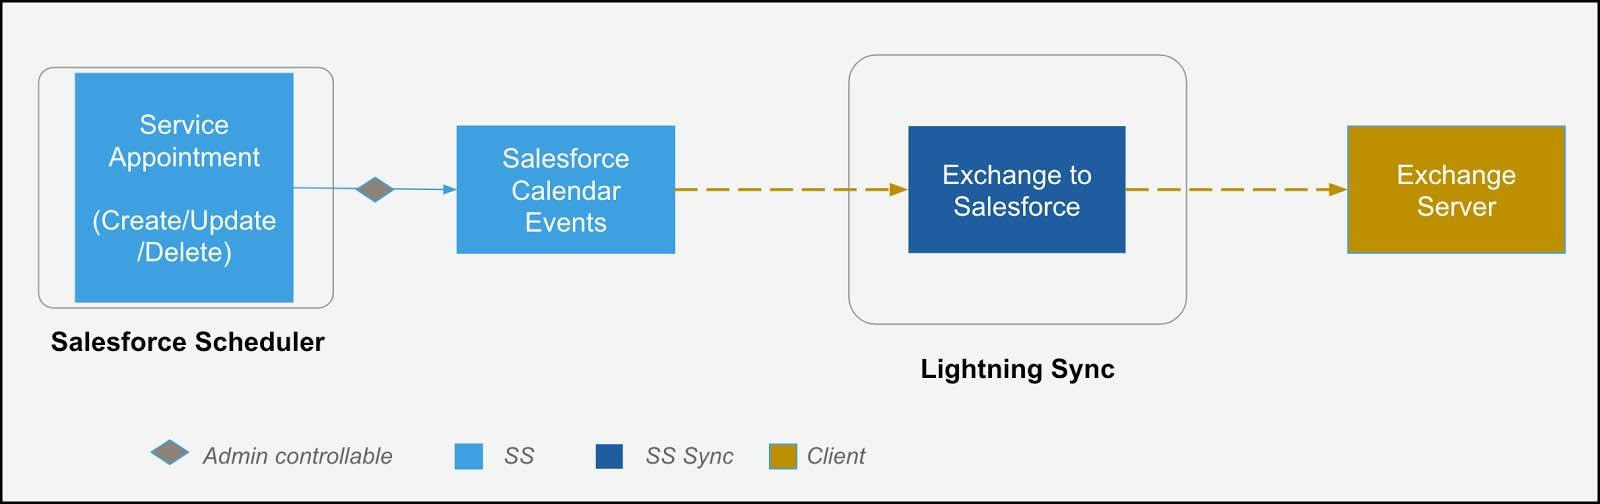 An illustration of the flow of data from Salesforce Scheduler to the exchange server.